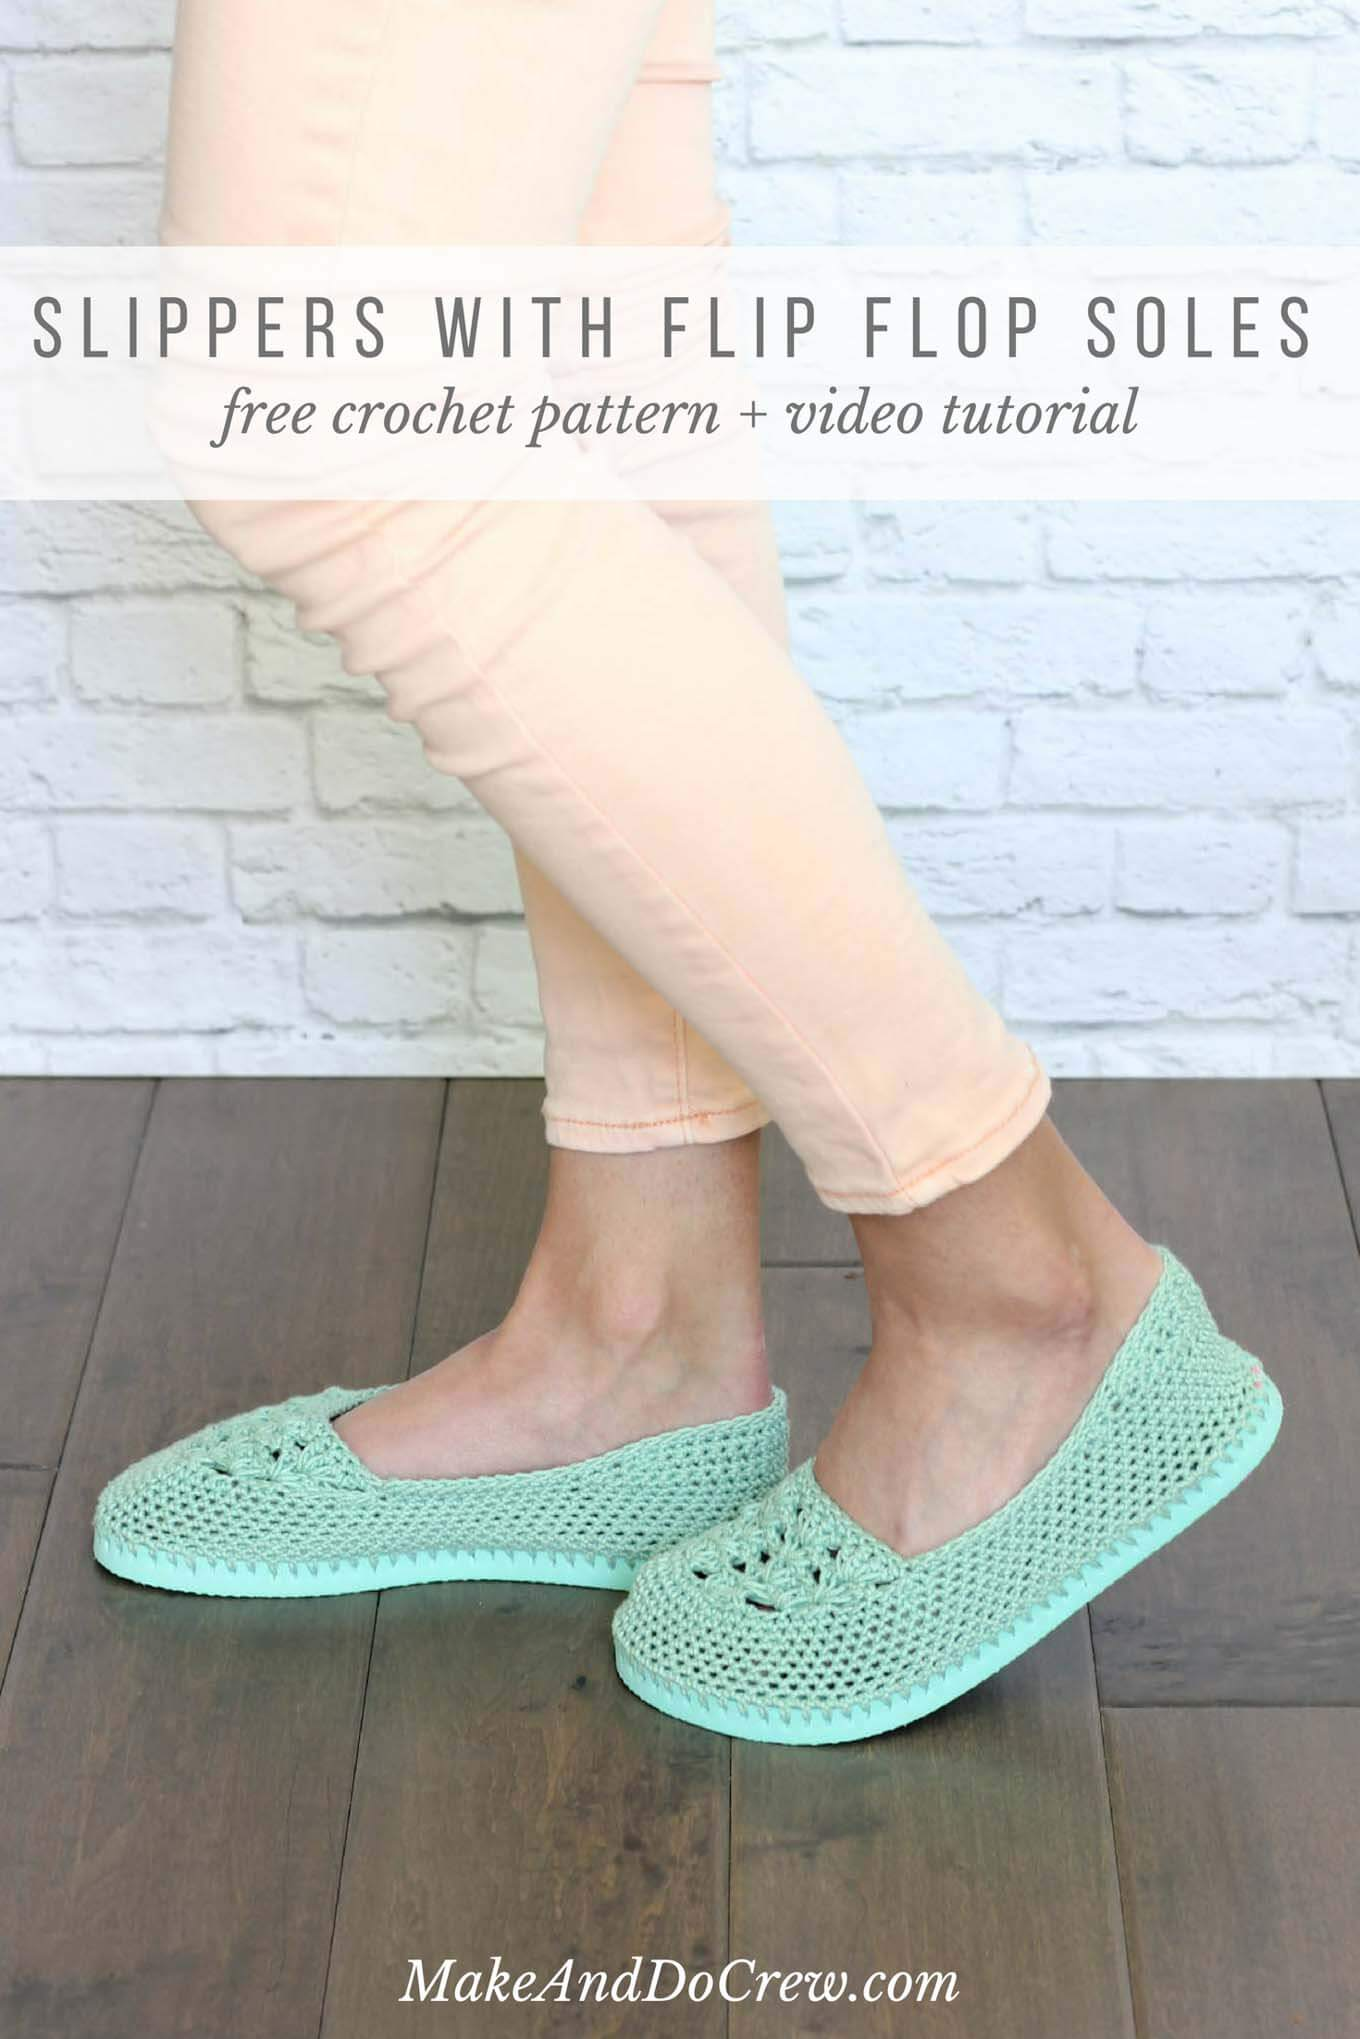 ac957d6df52300 Cotton yarn and a rubber sole make this free crochet slippers with flip flop  Turn cheap flip flops into crochet slippers or shoes for summer ...